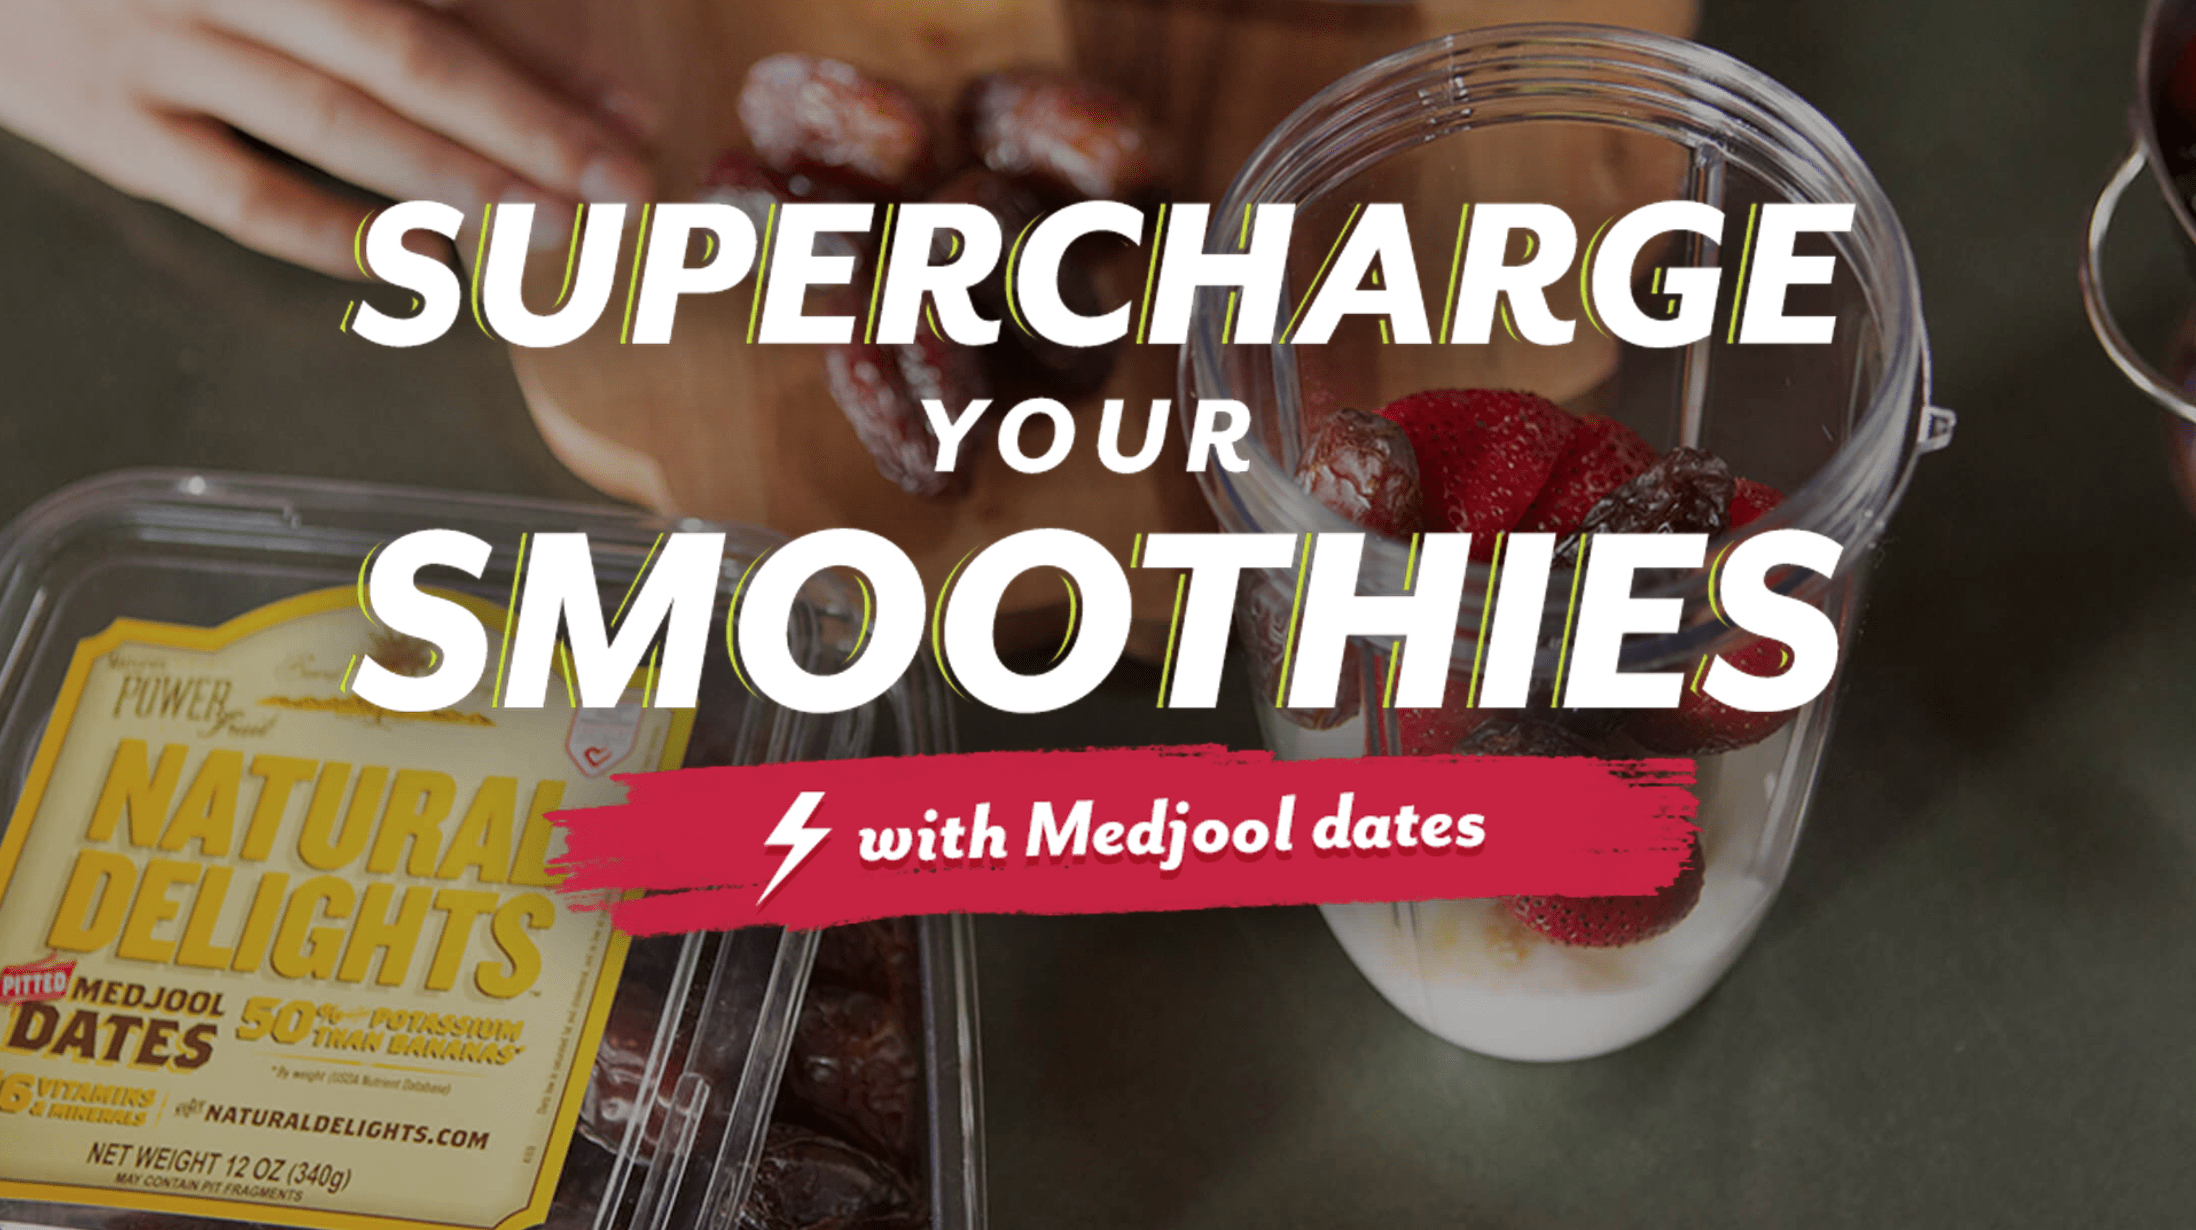 Supercharge your smoothie